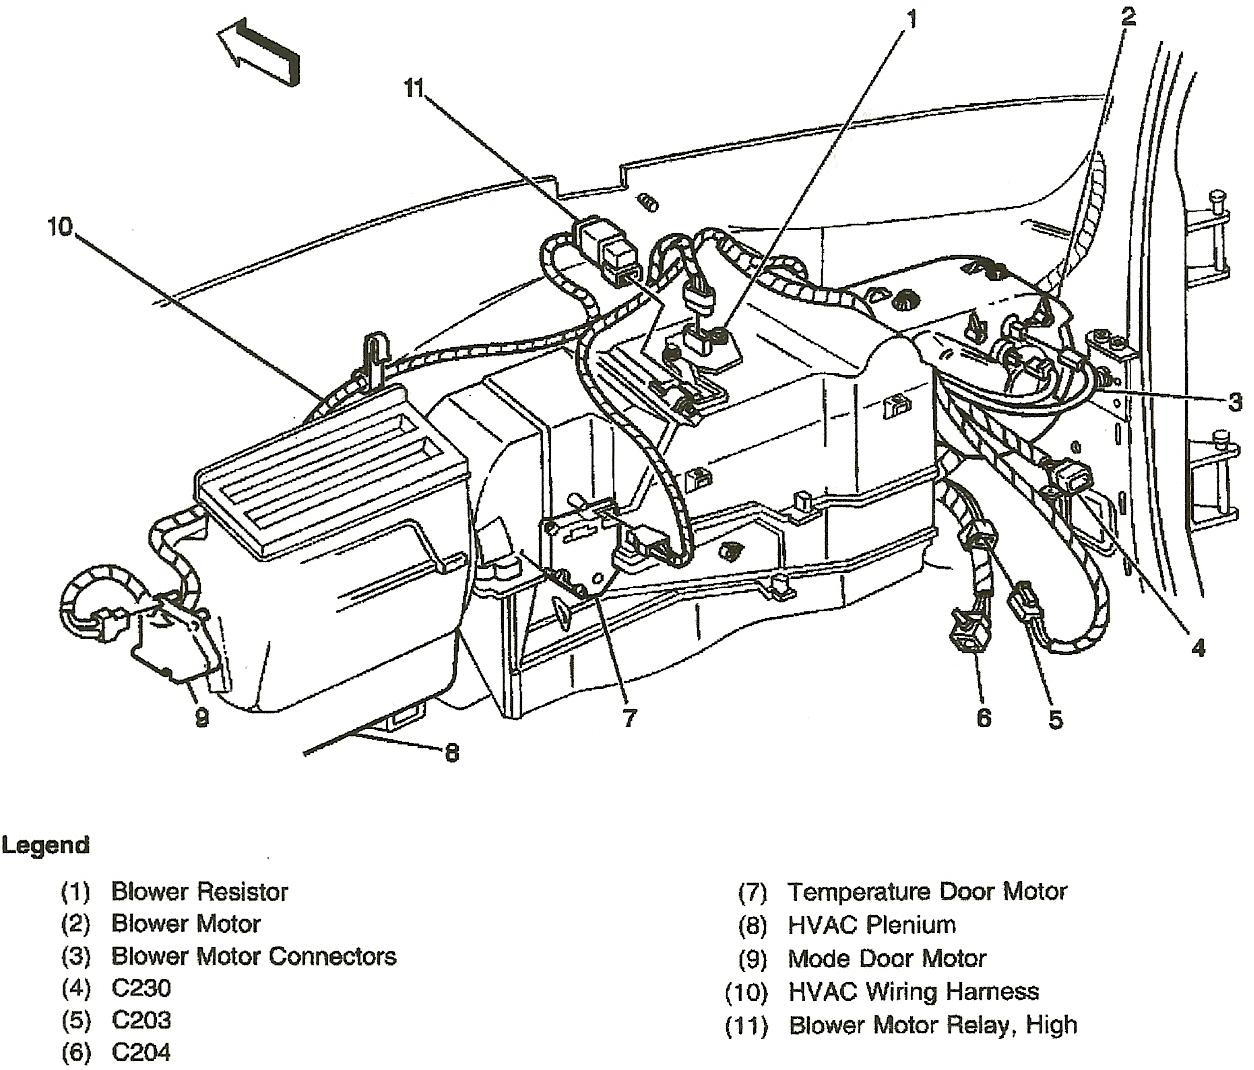 Fuse Box Diagram 2001 Suburban Engine - All Wiring Diagram